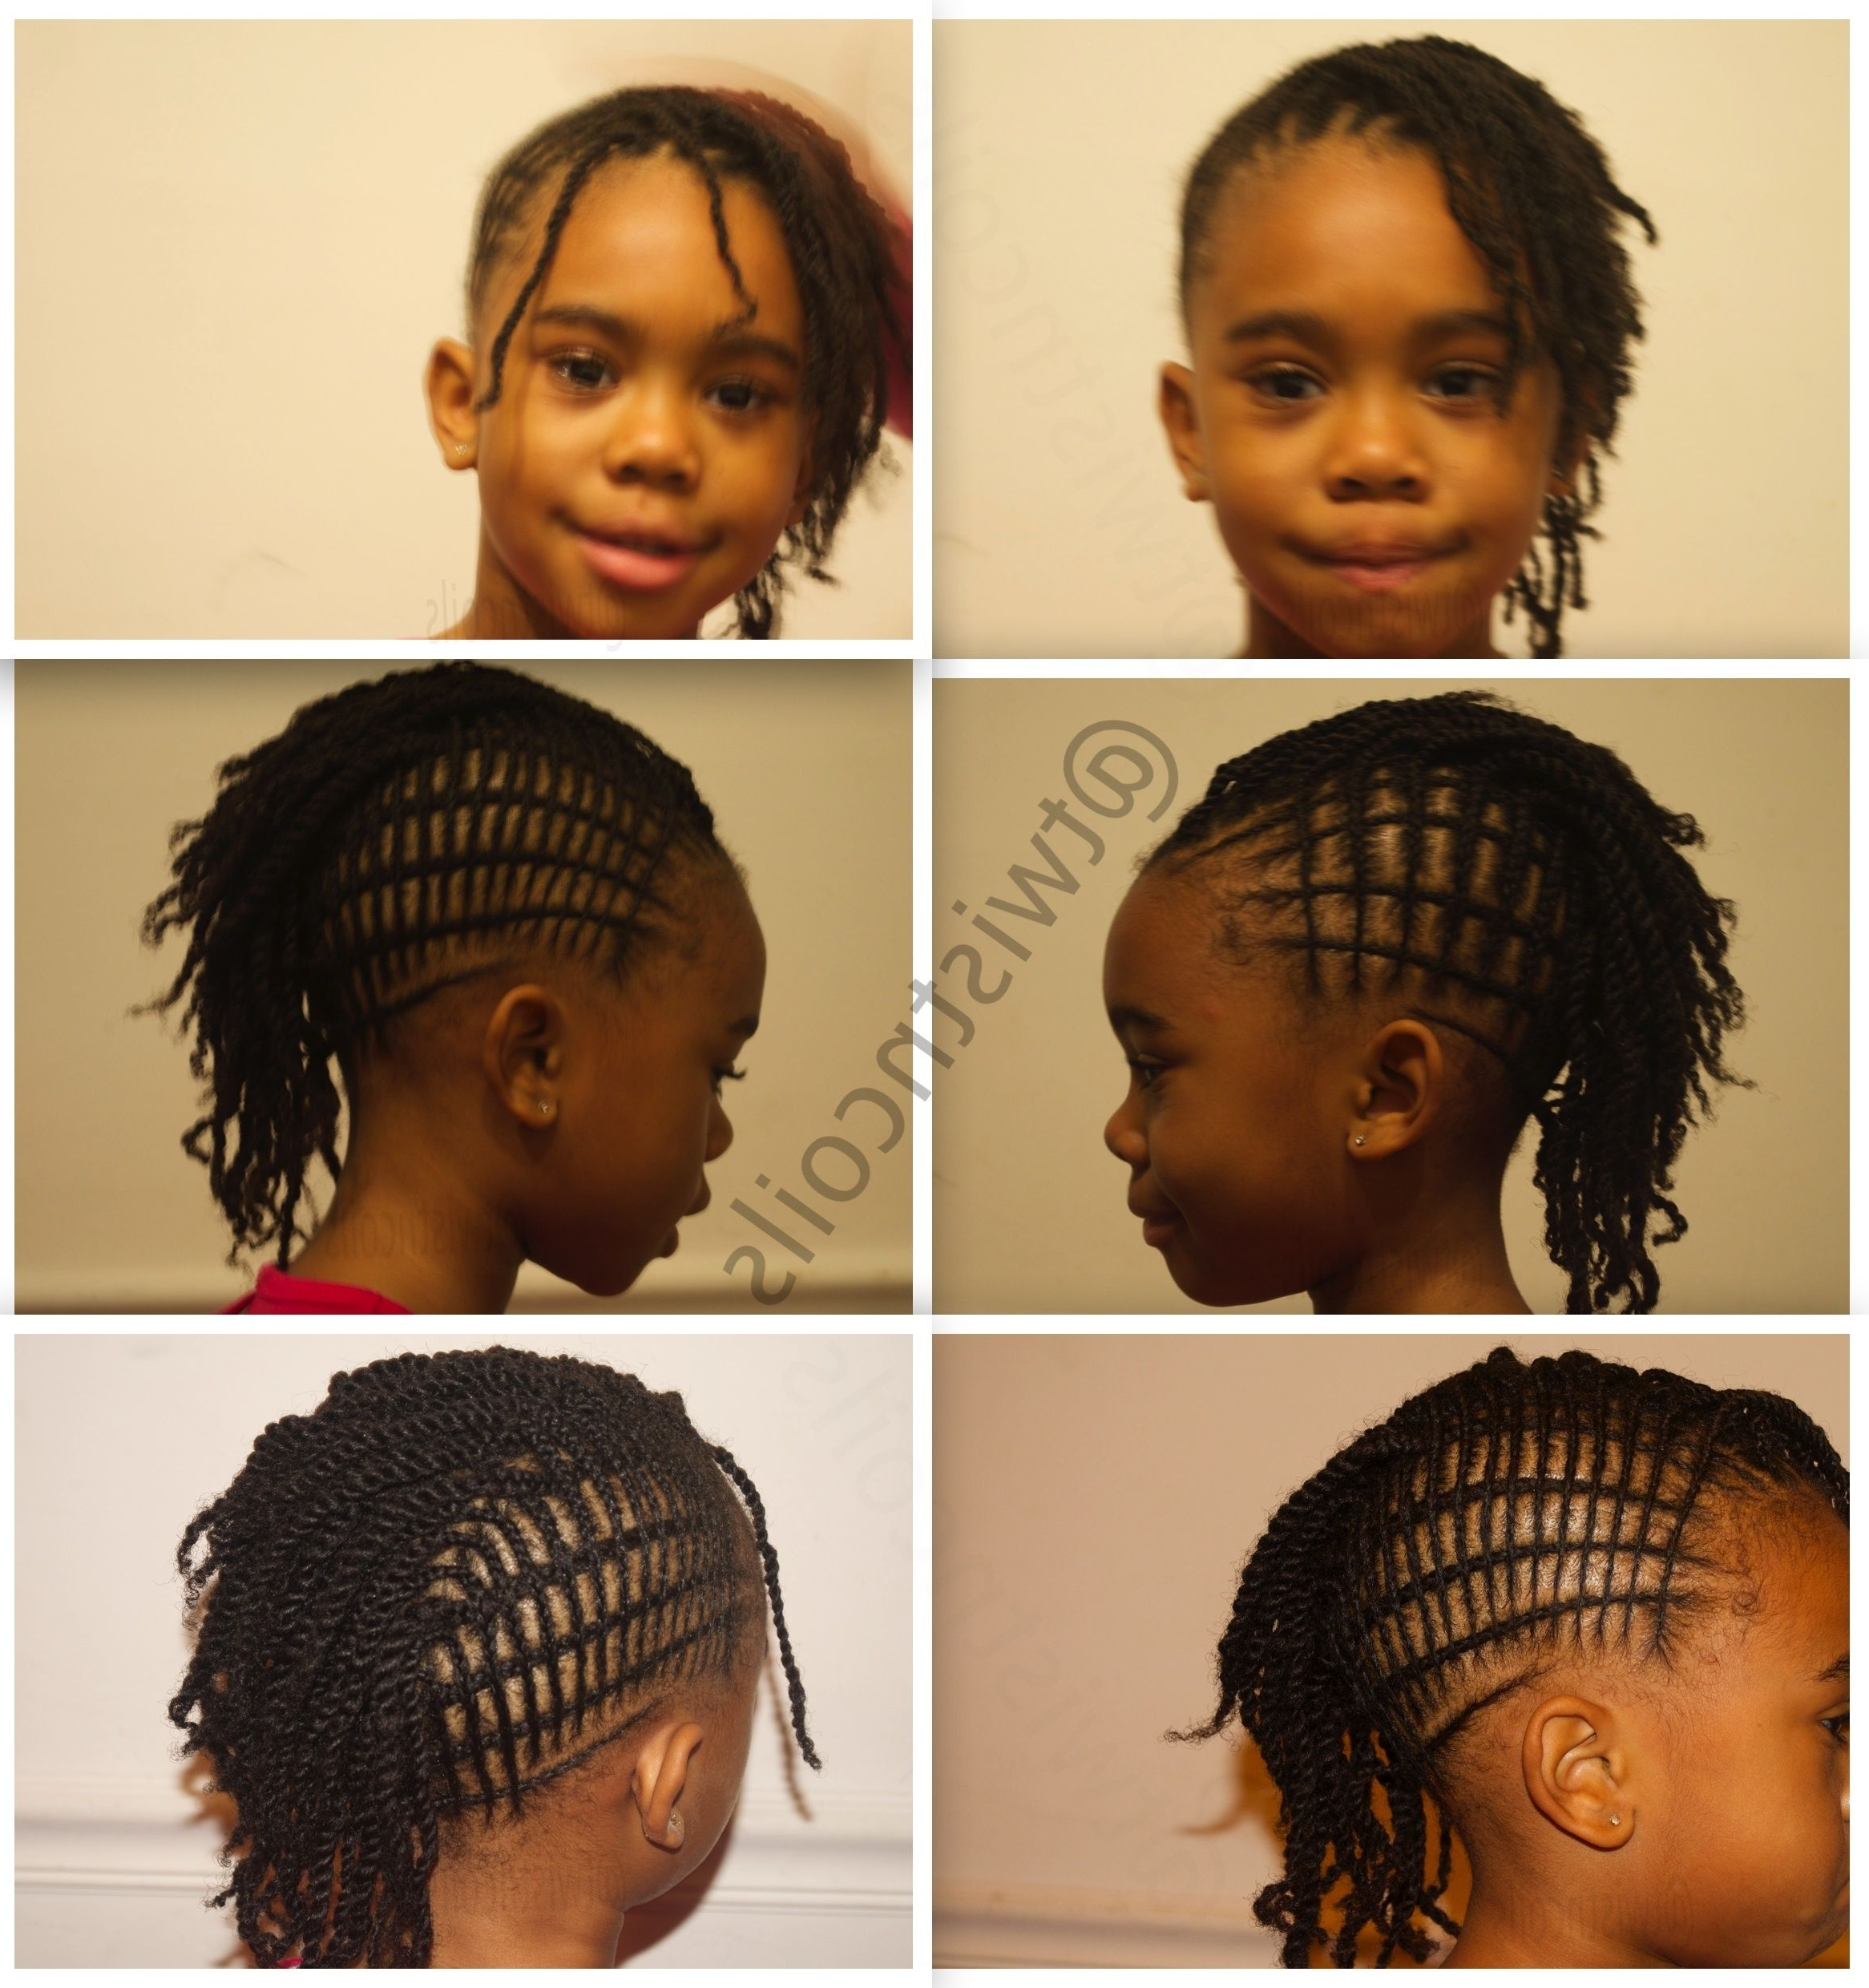 Best And Newest Mohawk With Criss Crossed Braids Intended For Interlaced (Criss Cross) Mohawk Design ~Tnc~ #kidsnaturalhair (View 2 of 15)